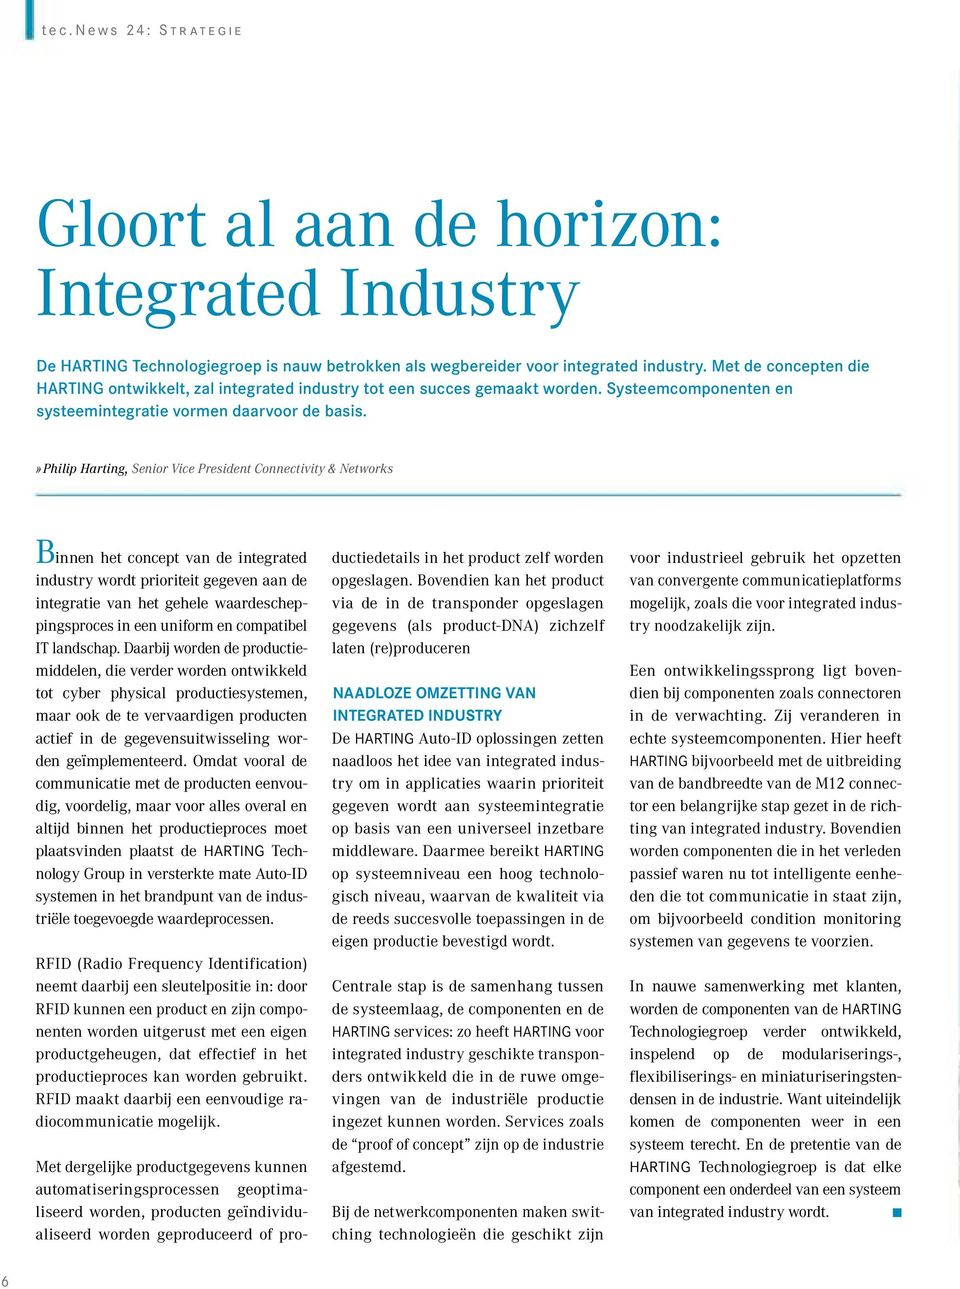 » Philip Harting, Senior Vice President Connectivity & Networks Binnen het concept van de integrated industry wordt prioriteit gegeven aan de integratie van het gehele waardescheppingsproces in een